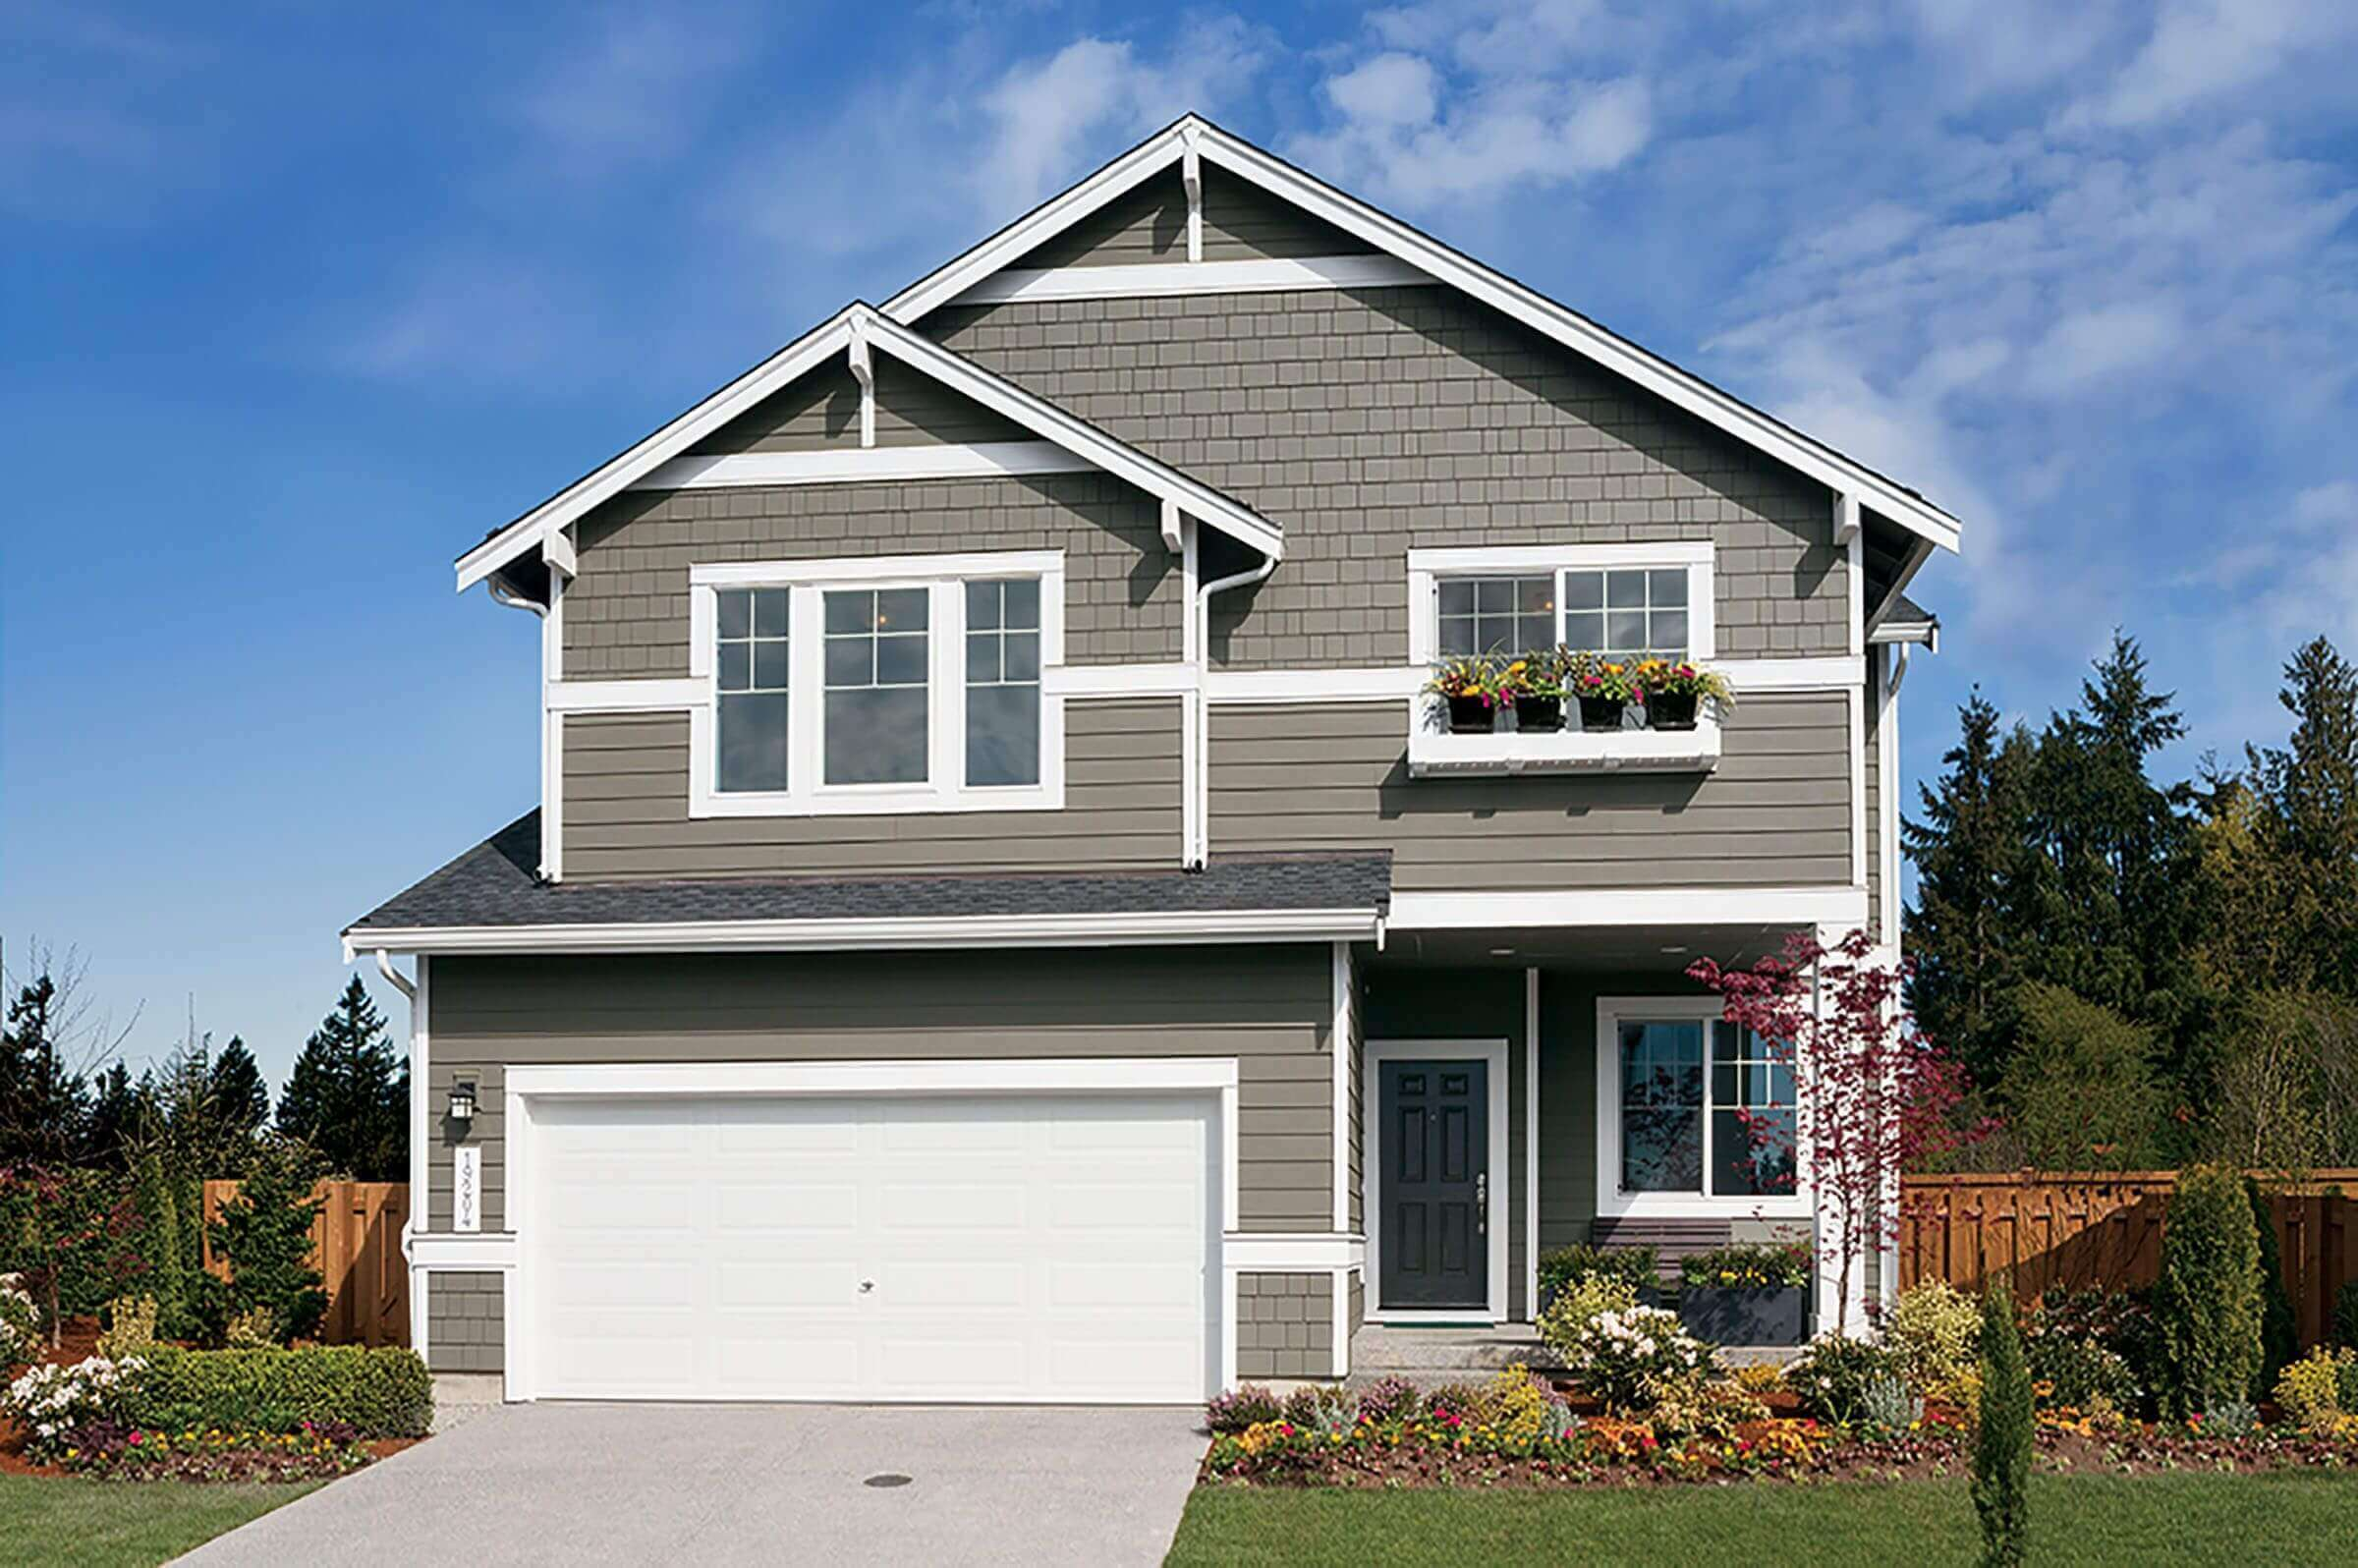 Single Family for Sale at Overlook At Riverfront - The Skagit 4312 30th Dr Se Everett, Washington 98203 United States